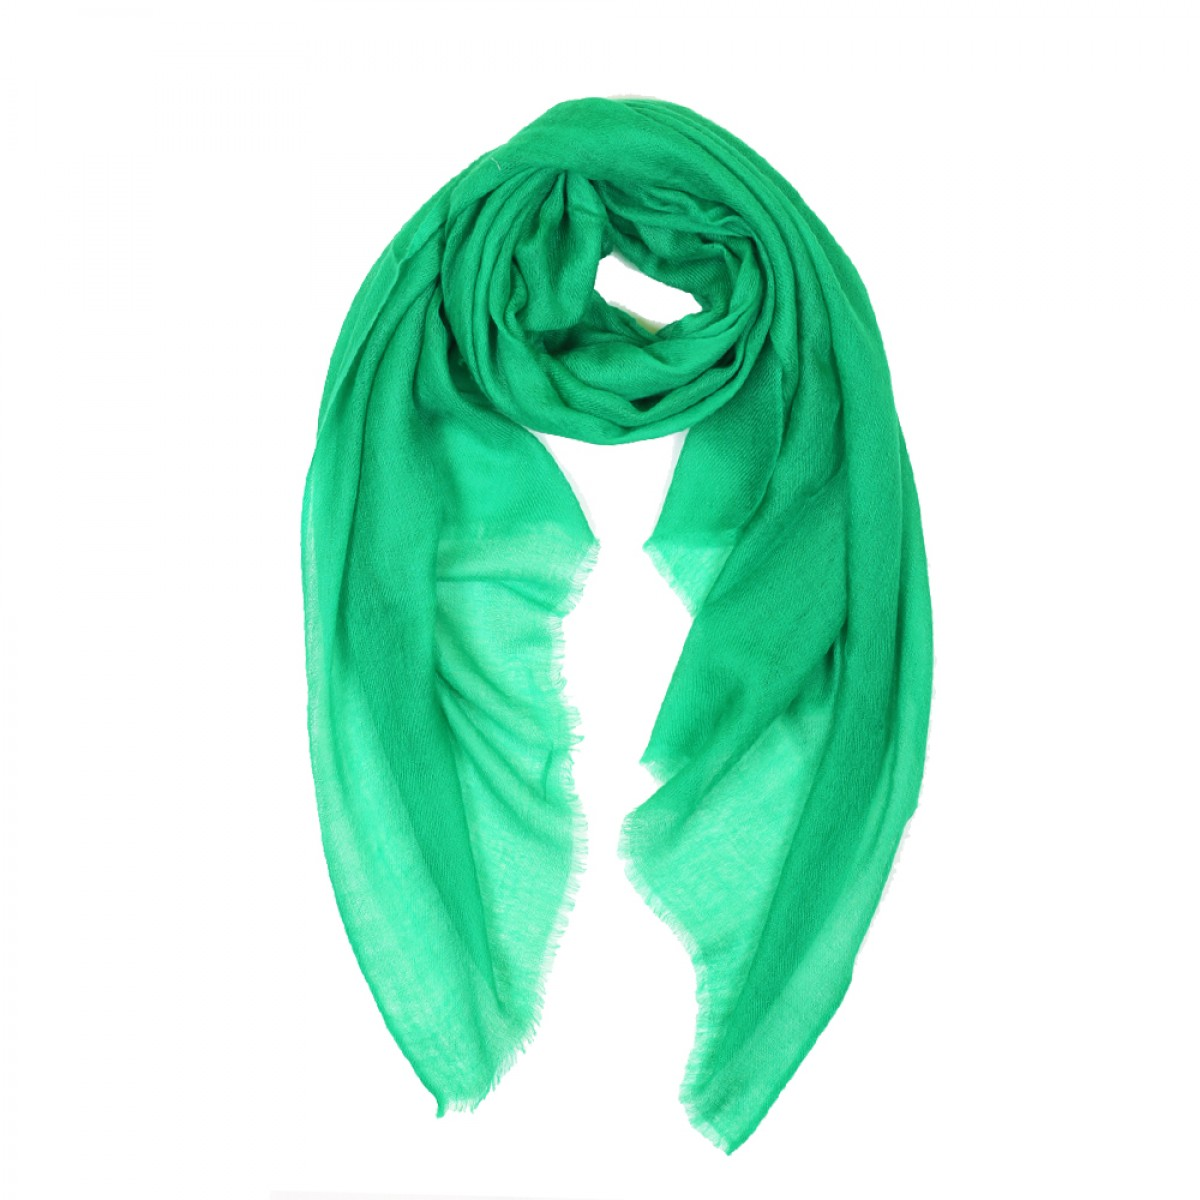 Sheer Pashmina Scarf - Emerald Green